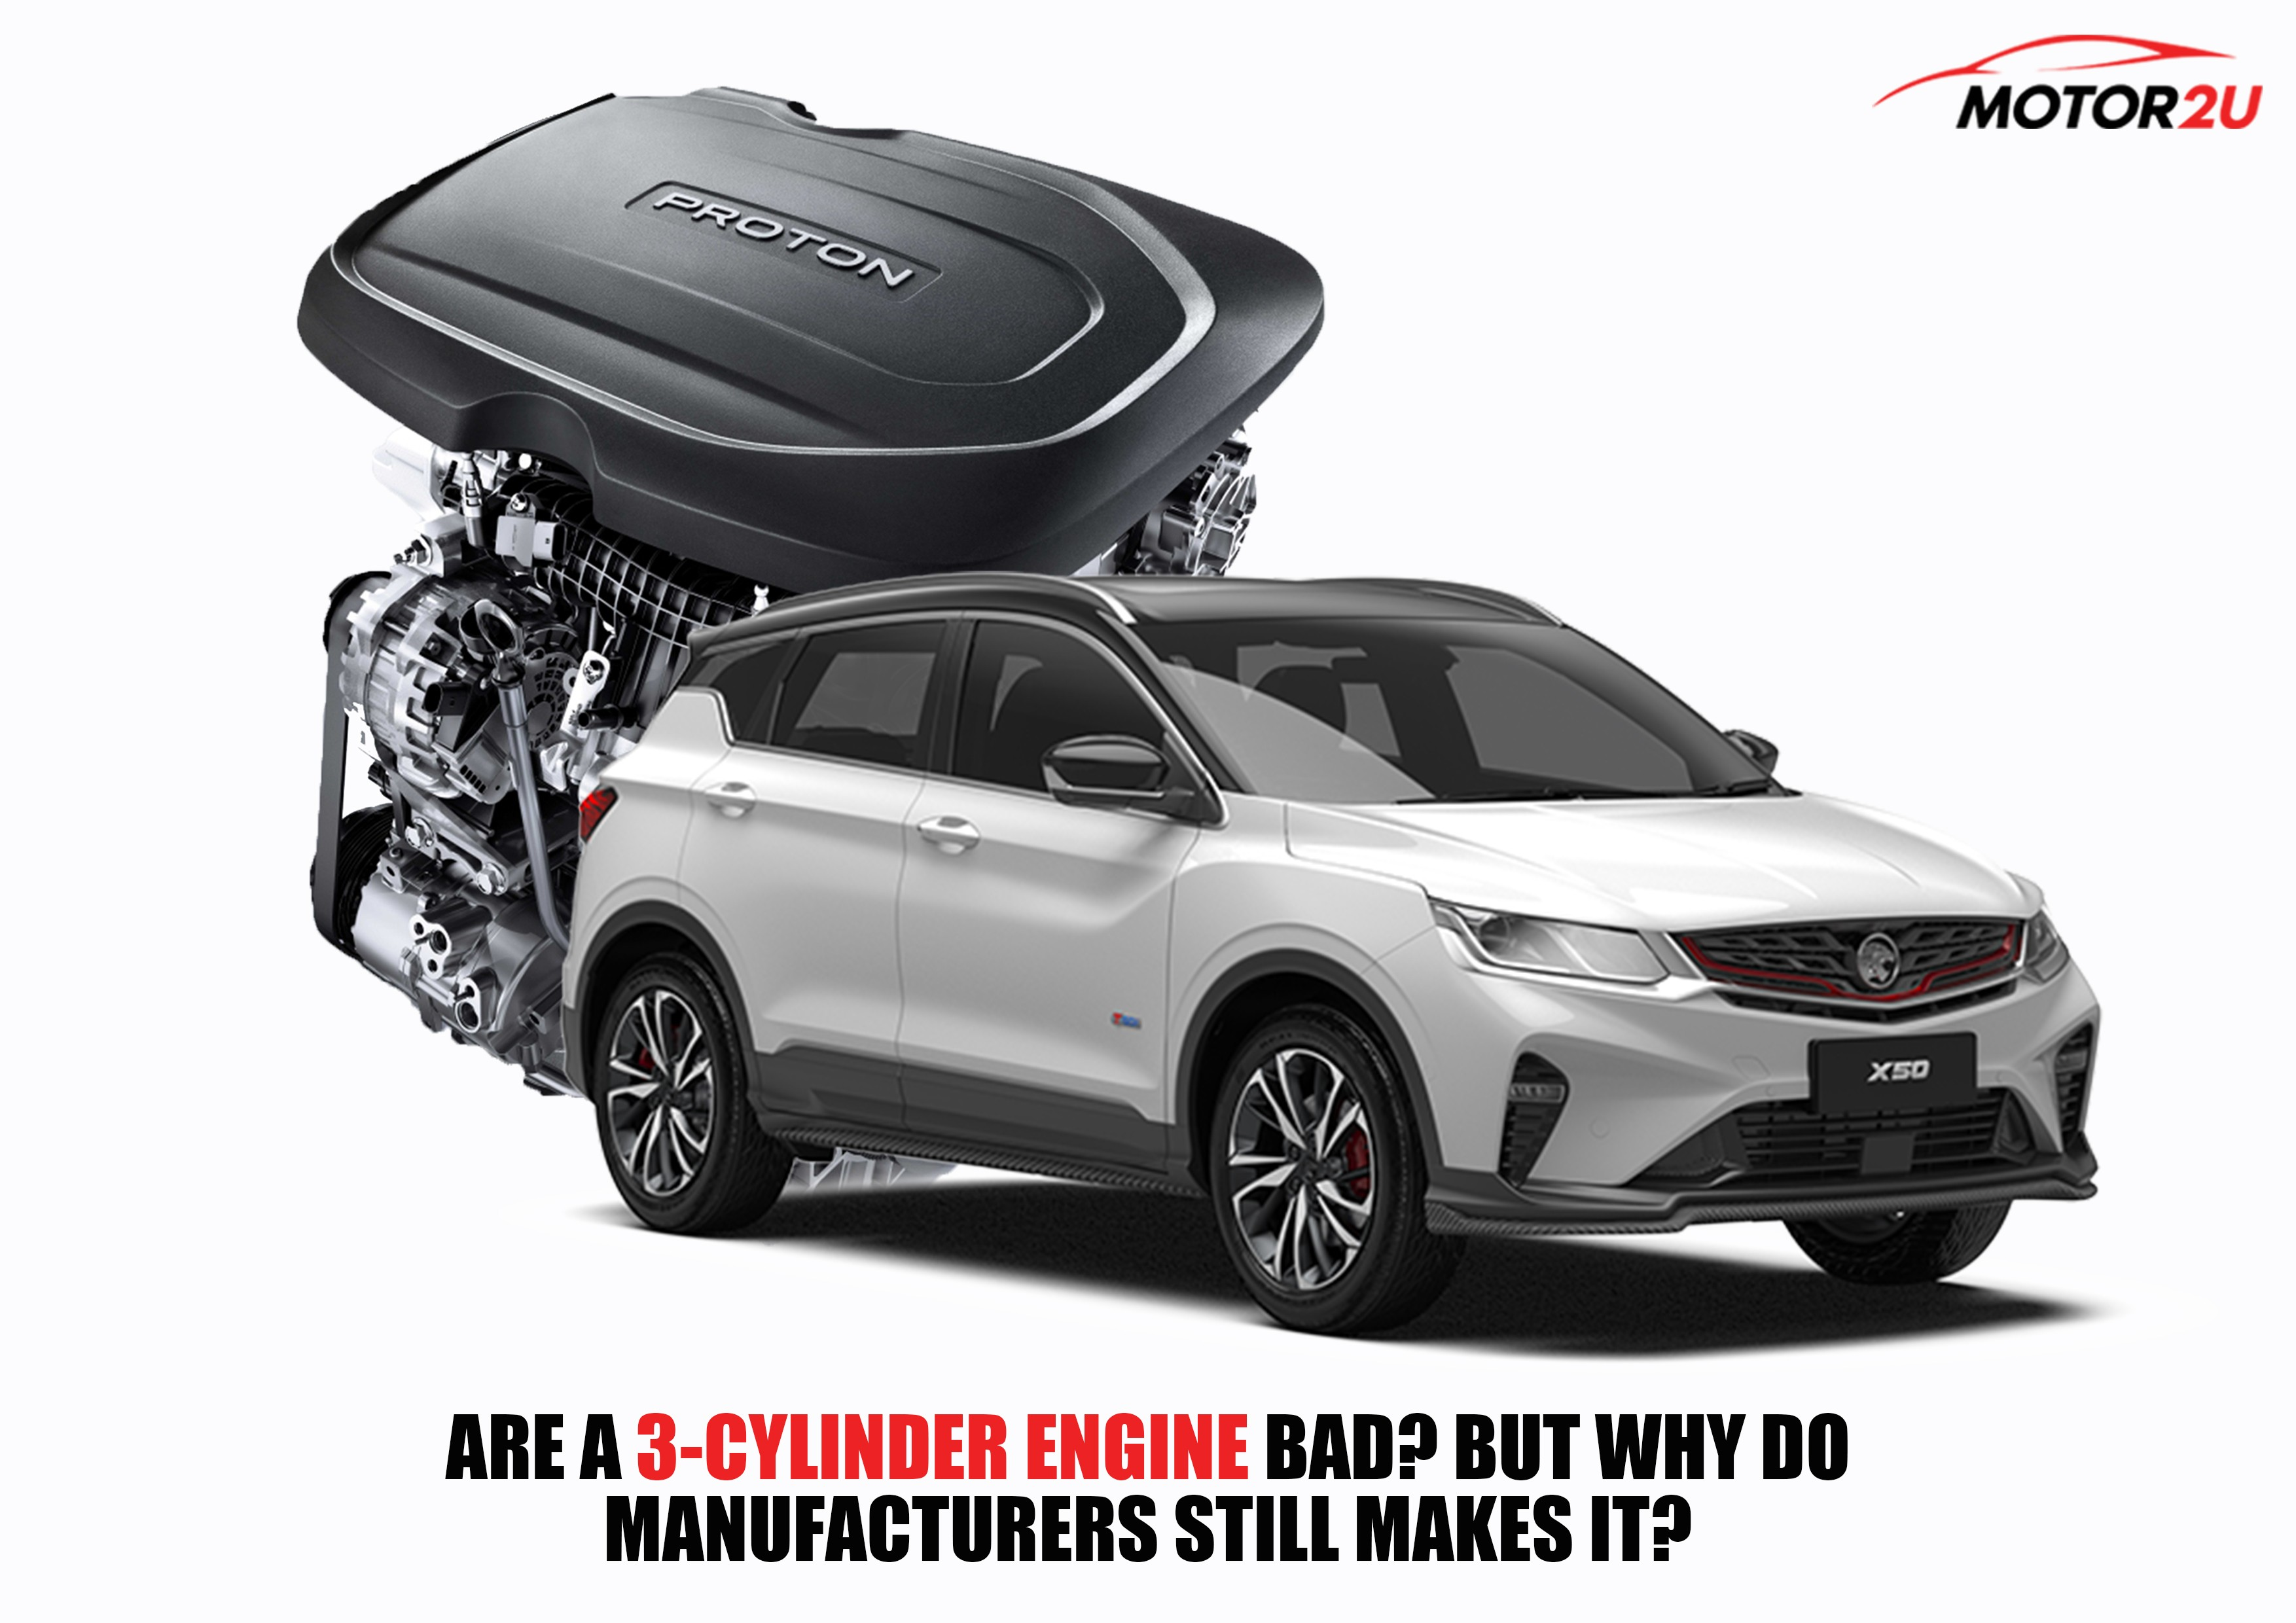 Is 3-Cylinder engine bad? So why do manufacturers still make it?